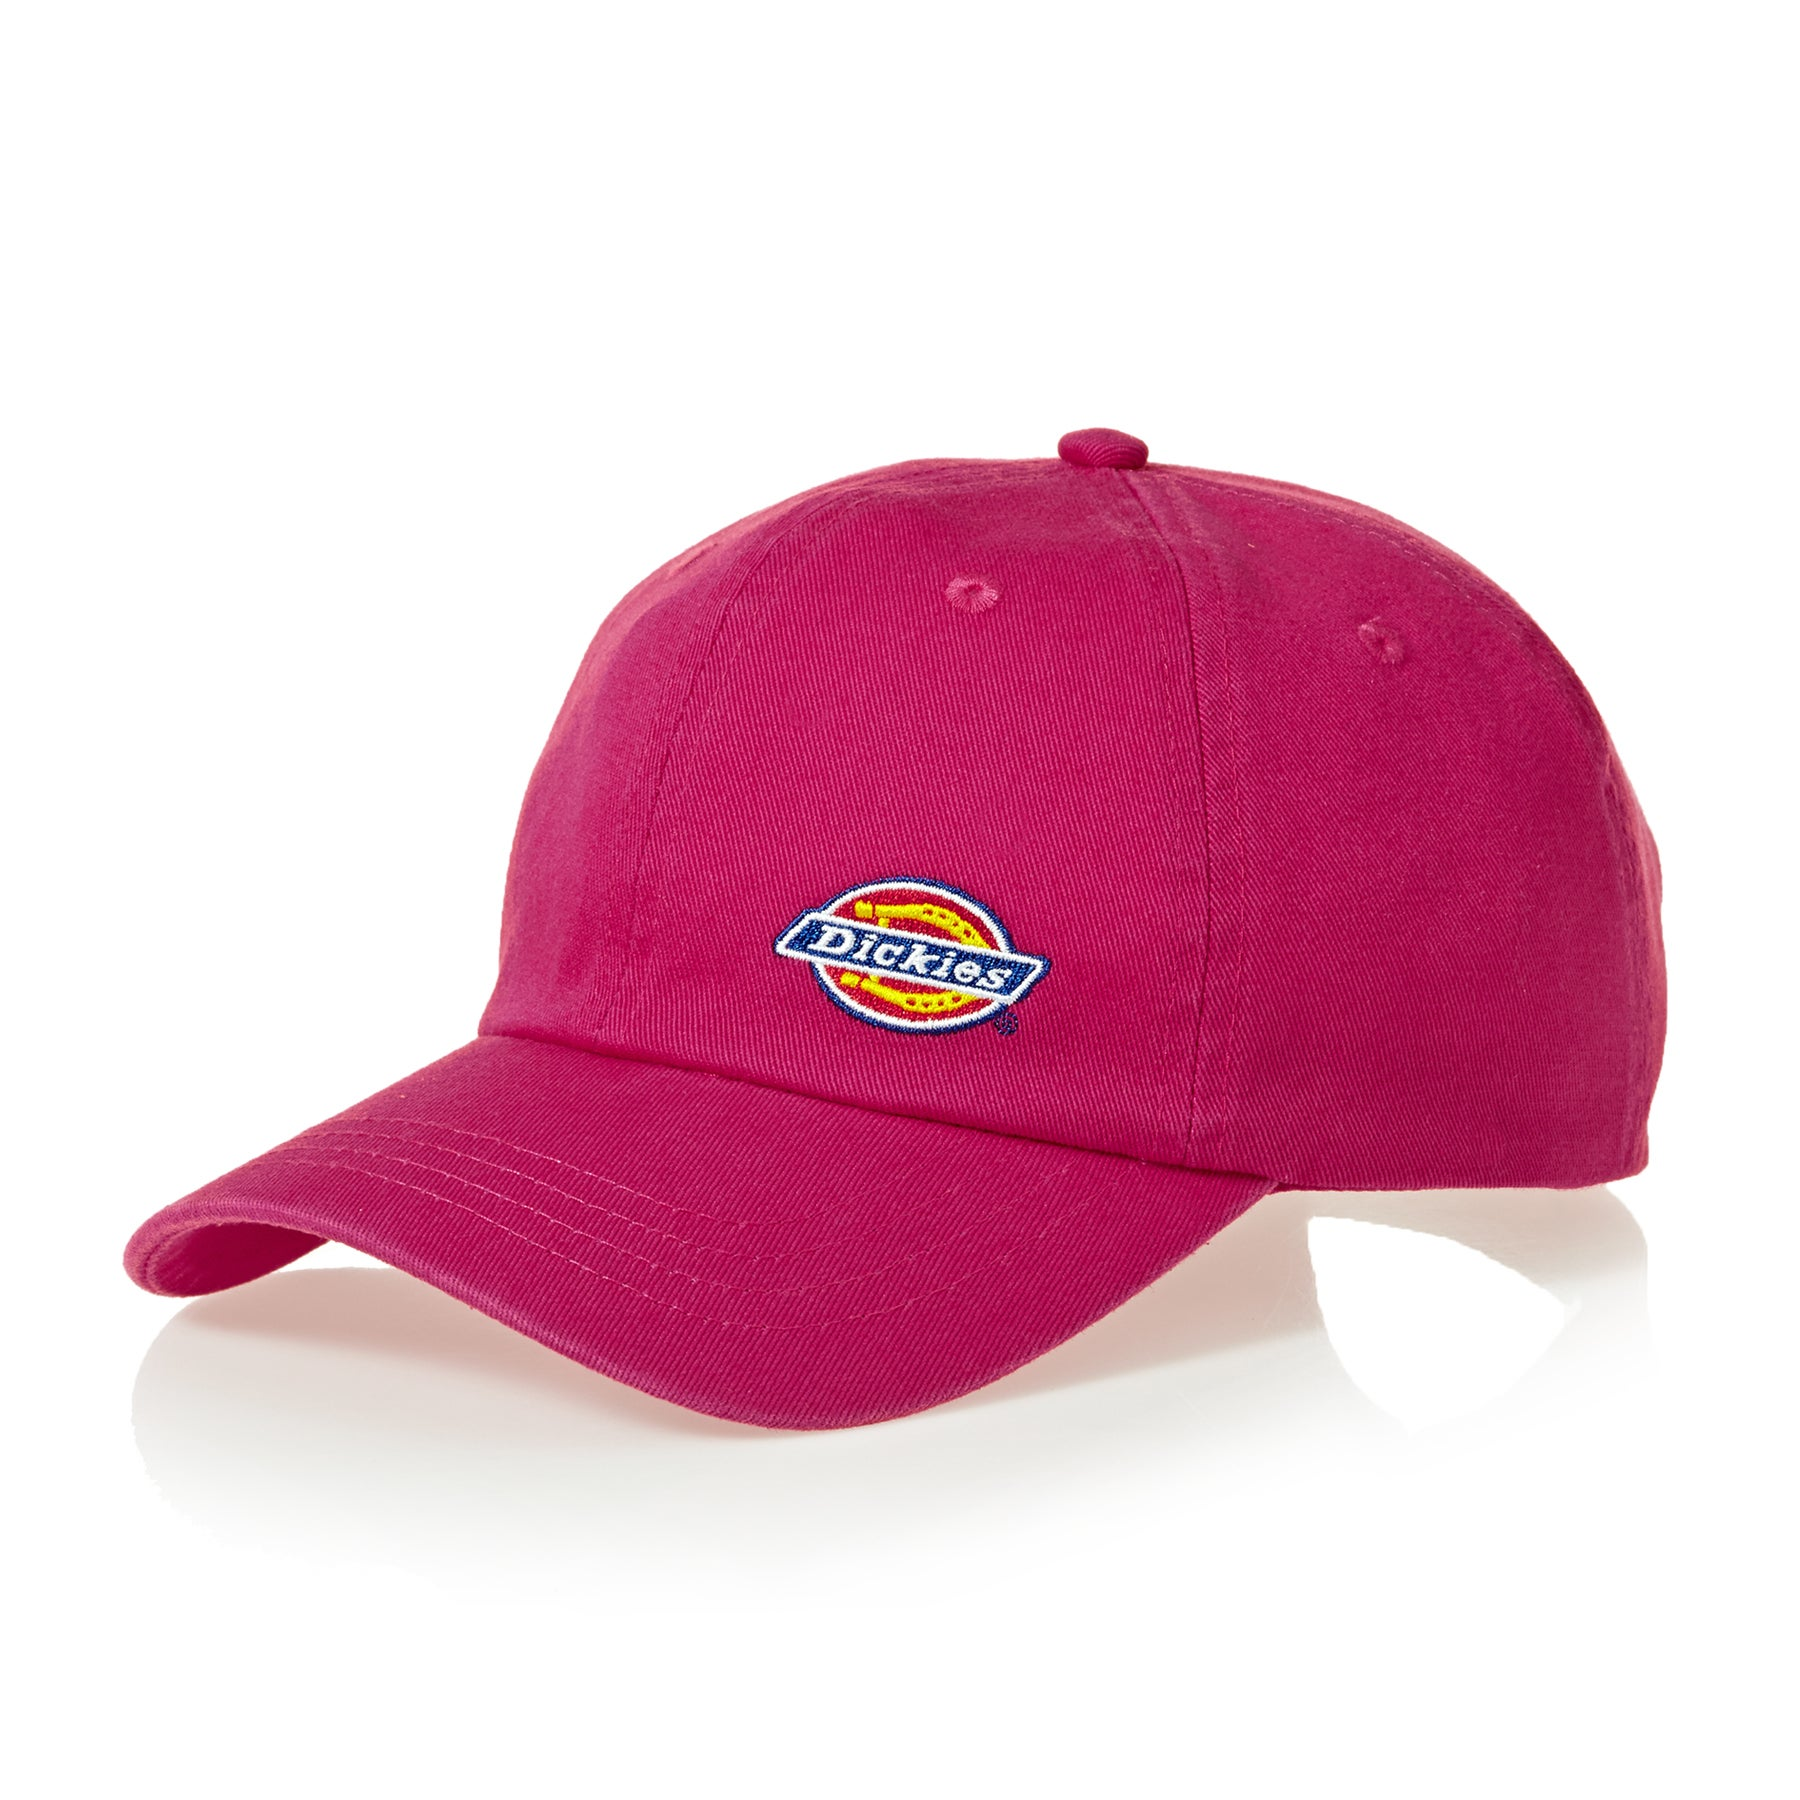 Dickies Willow City Womens 帽子 - Rose Pink